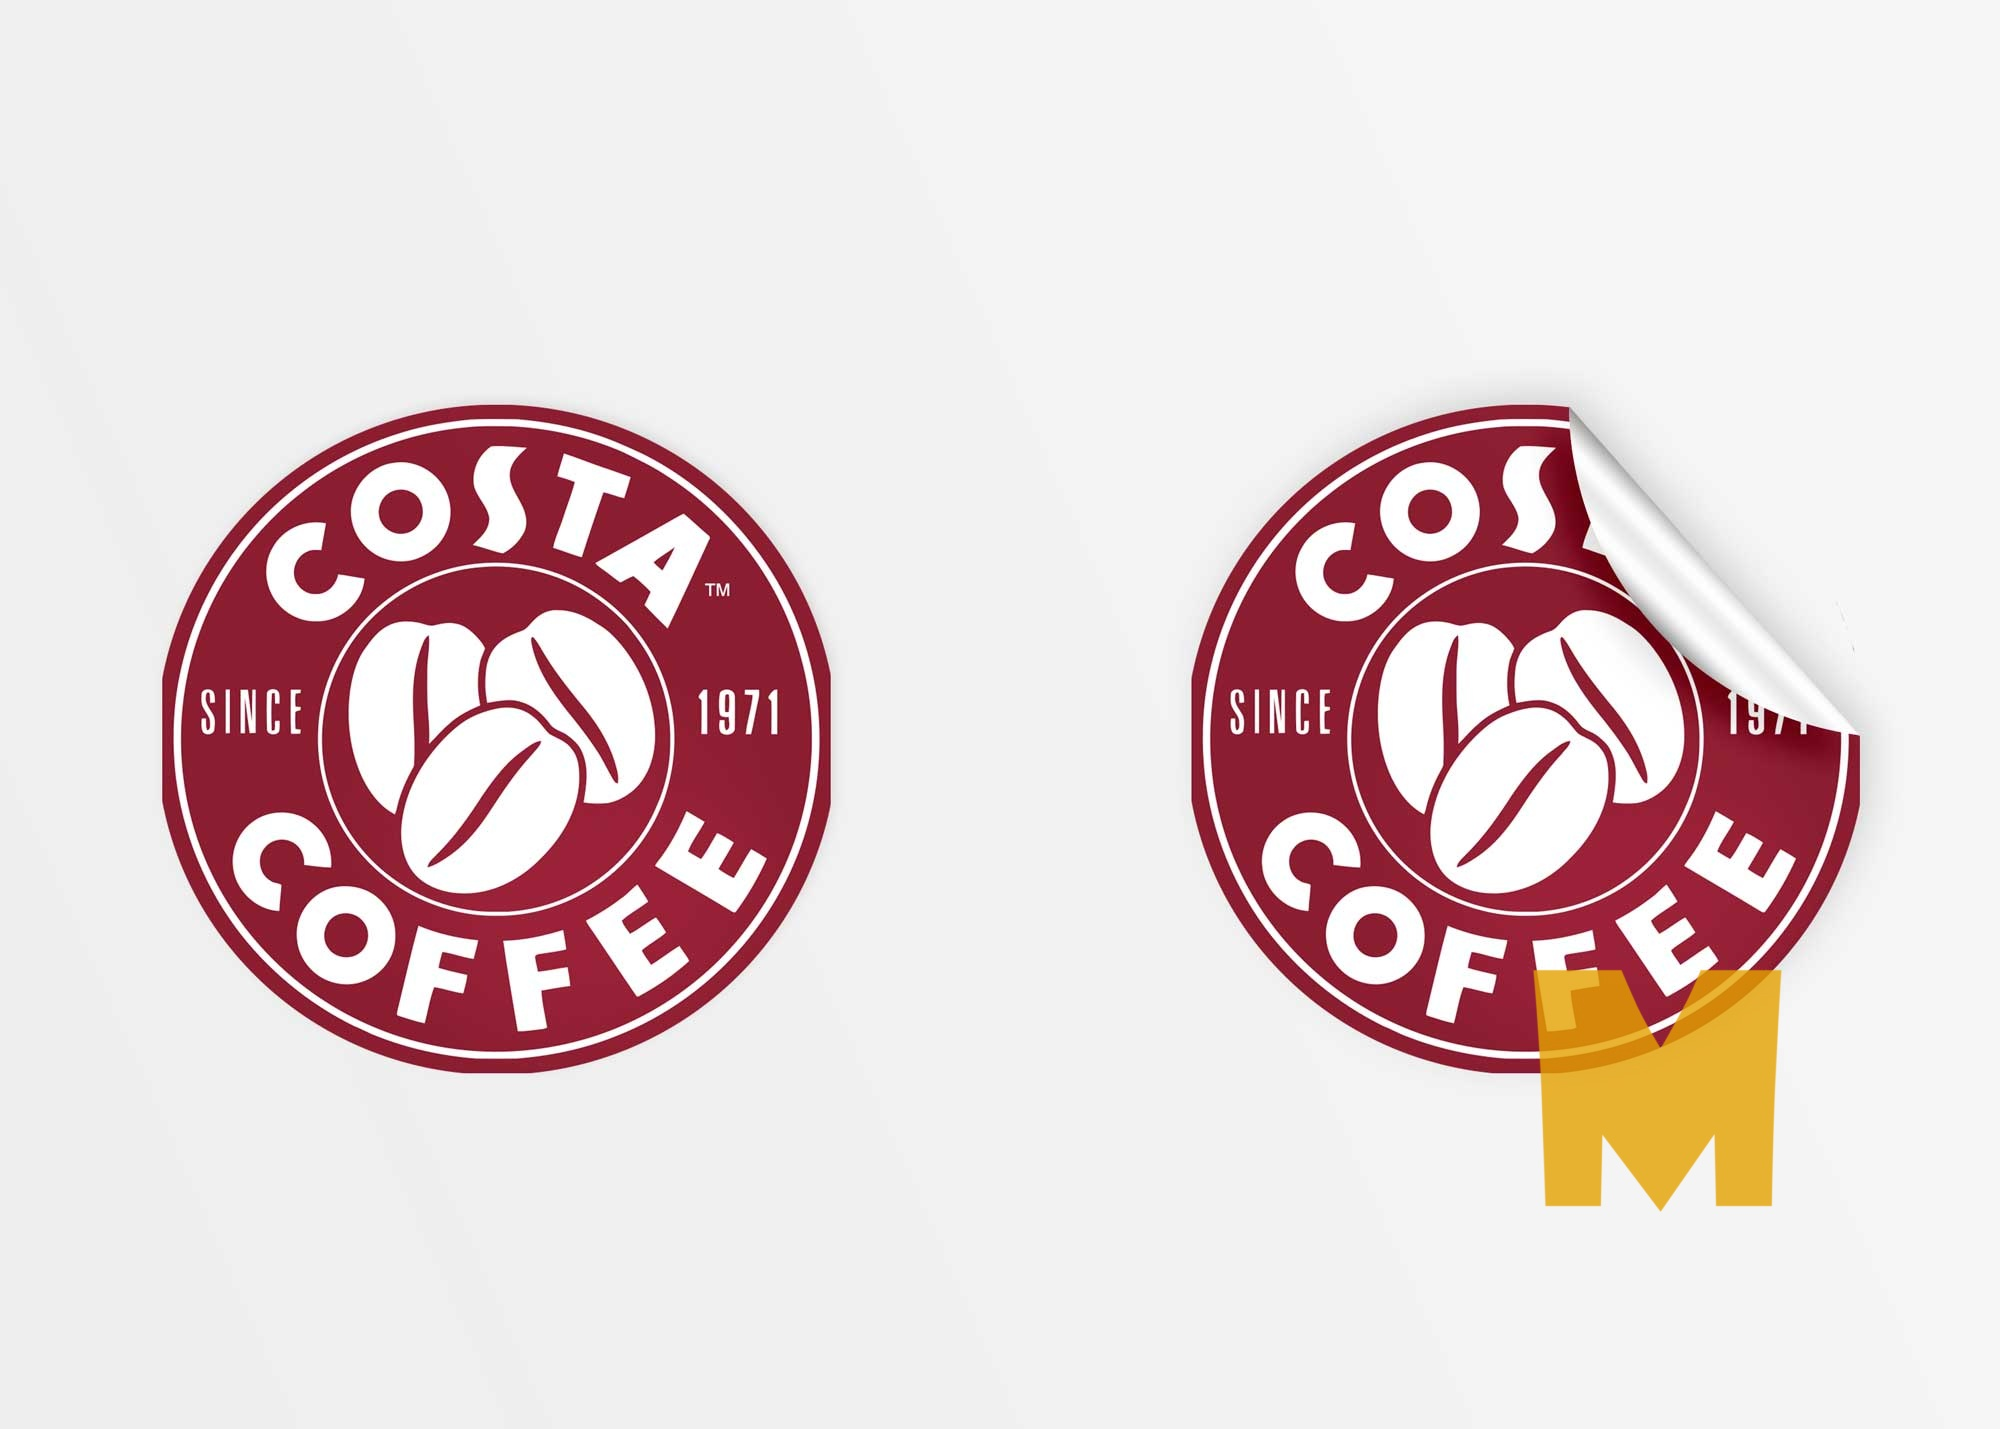 Free Rounded Coffee Stickers Mockup